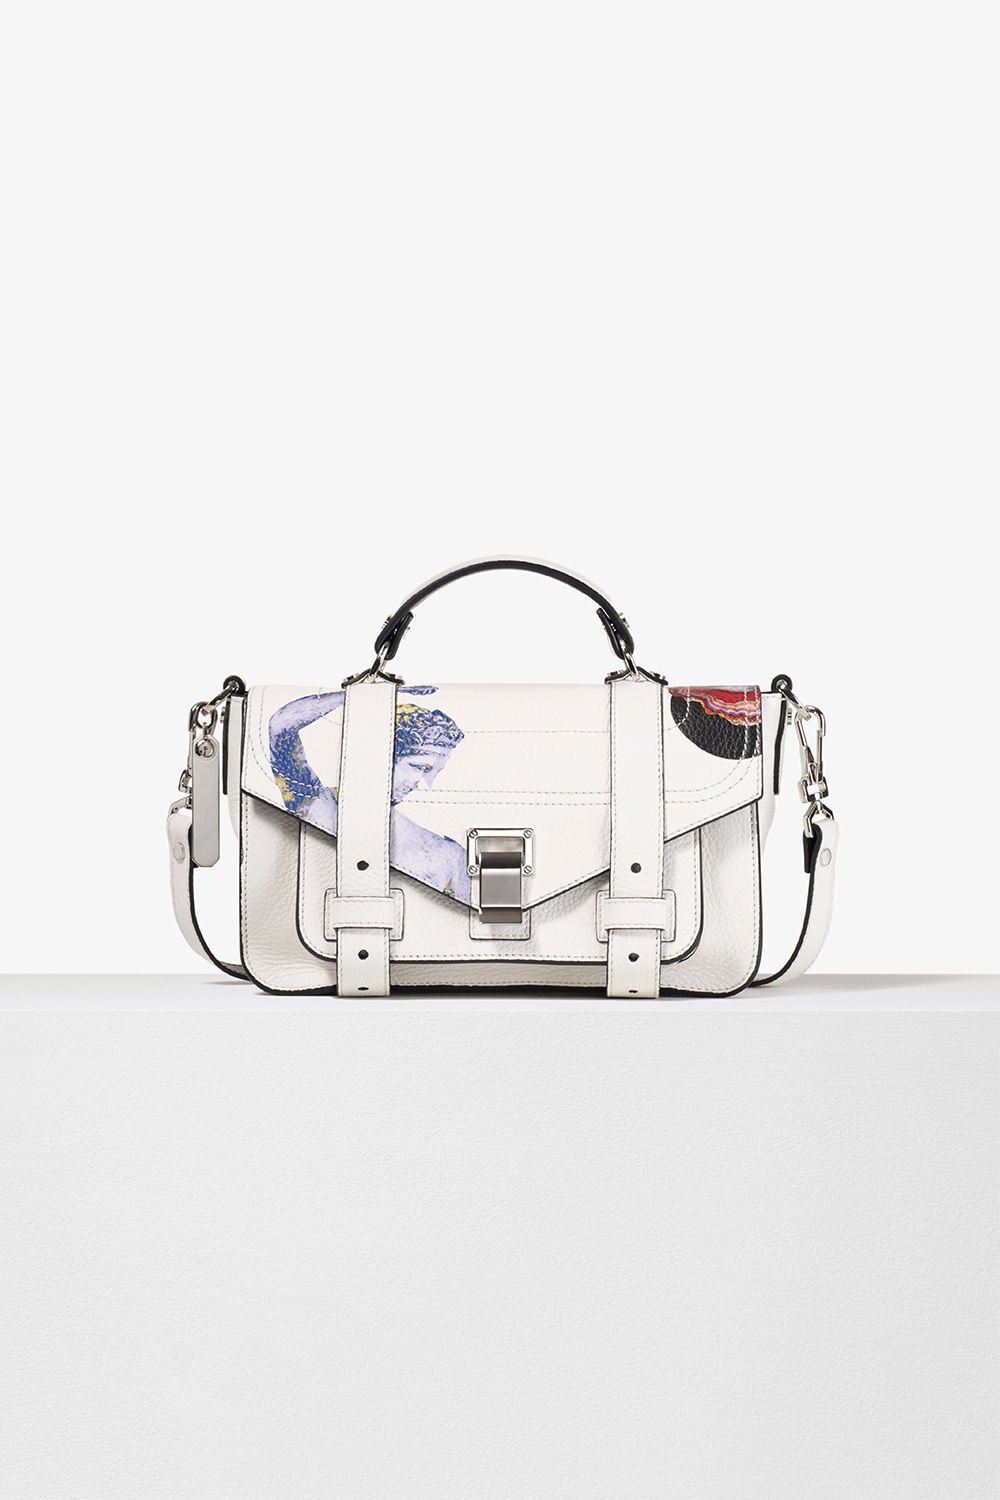 proenza schouler spring 2017 optic white printed leather ps1+ tiny bag